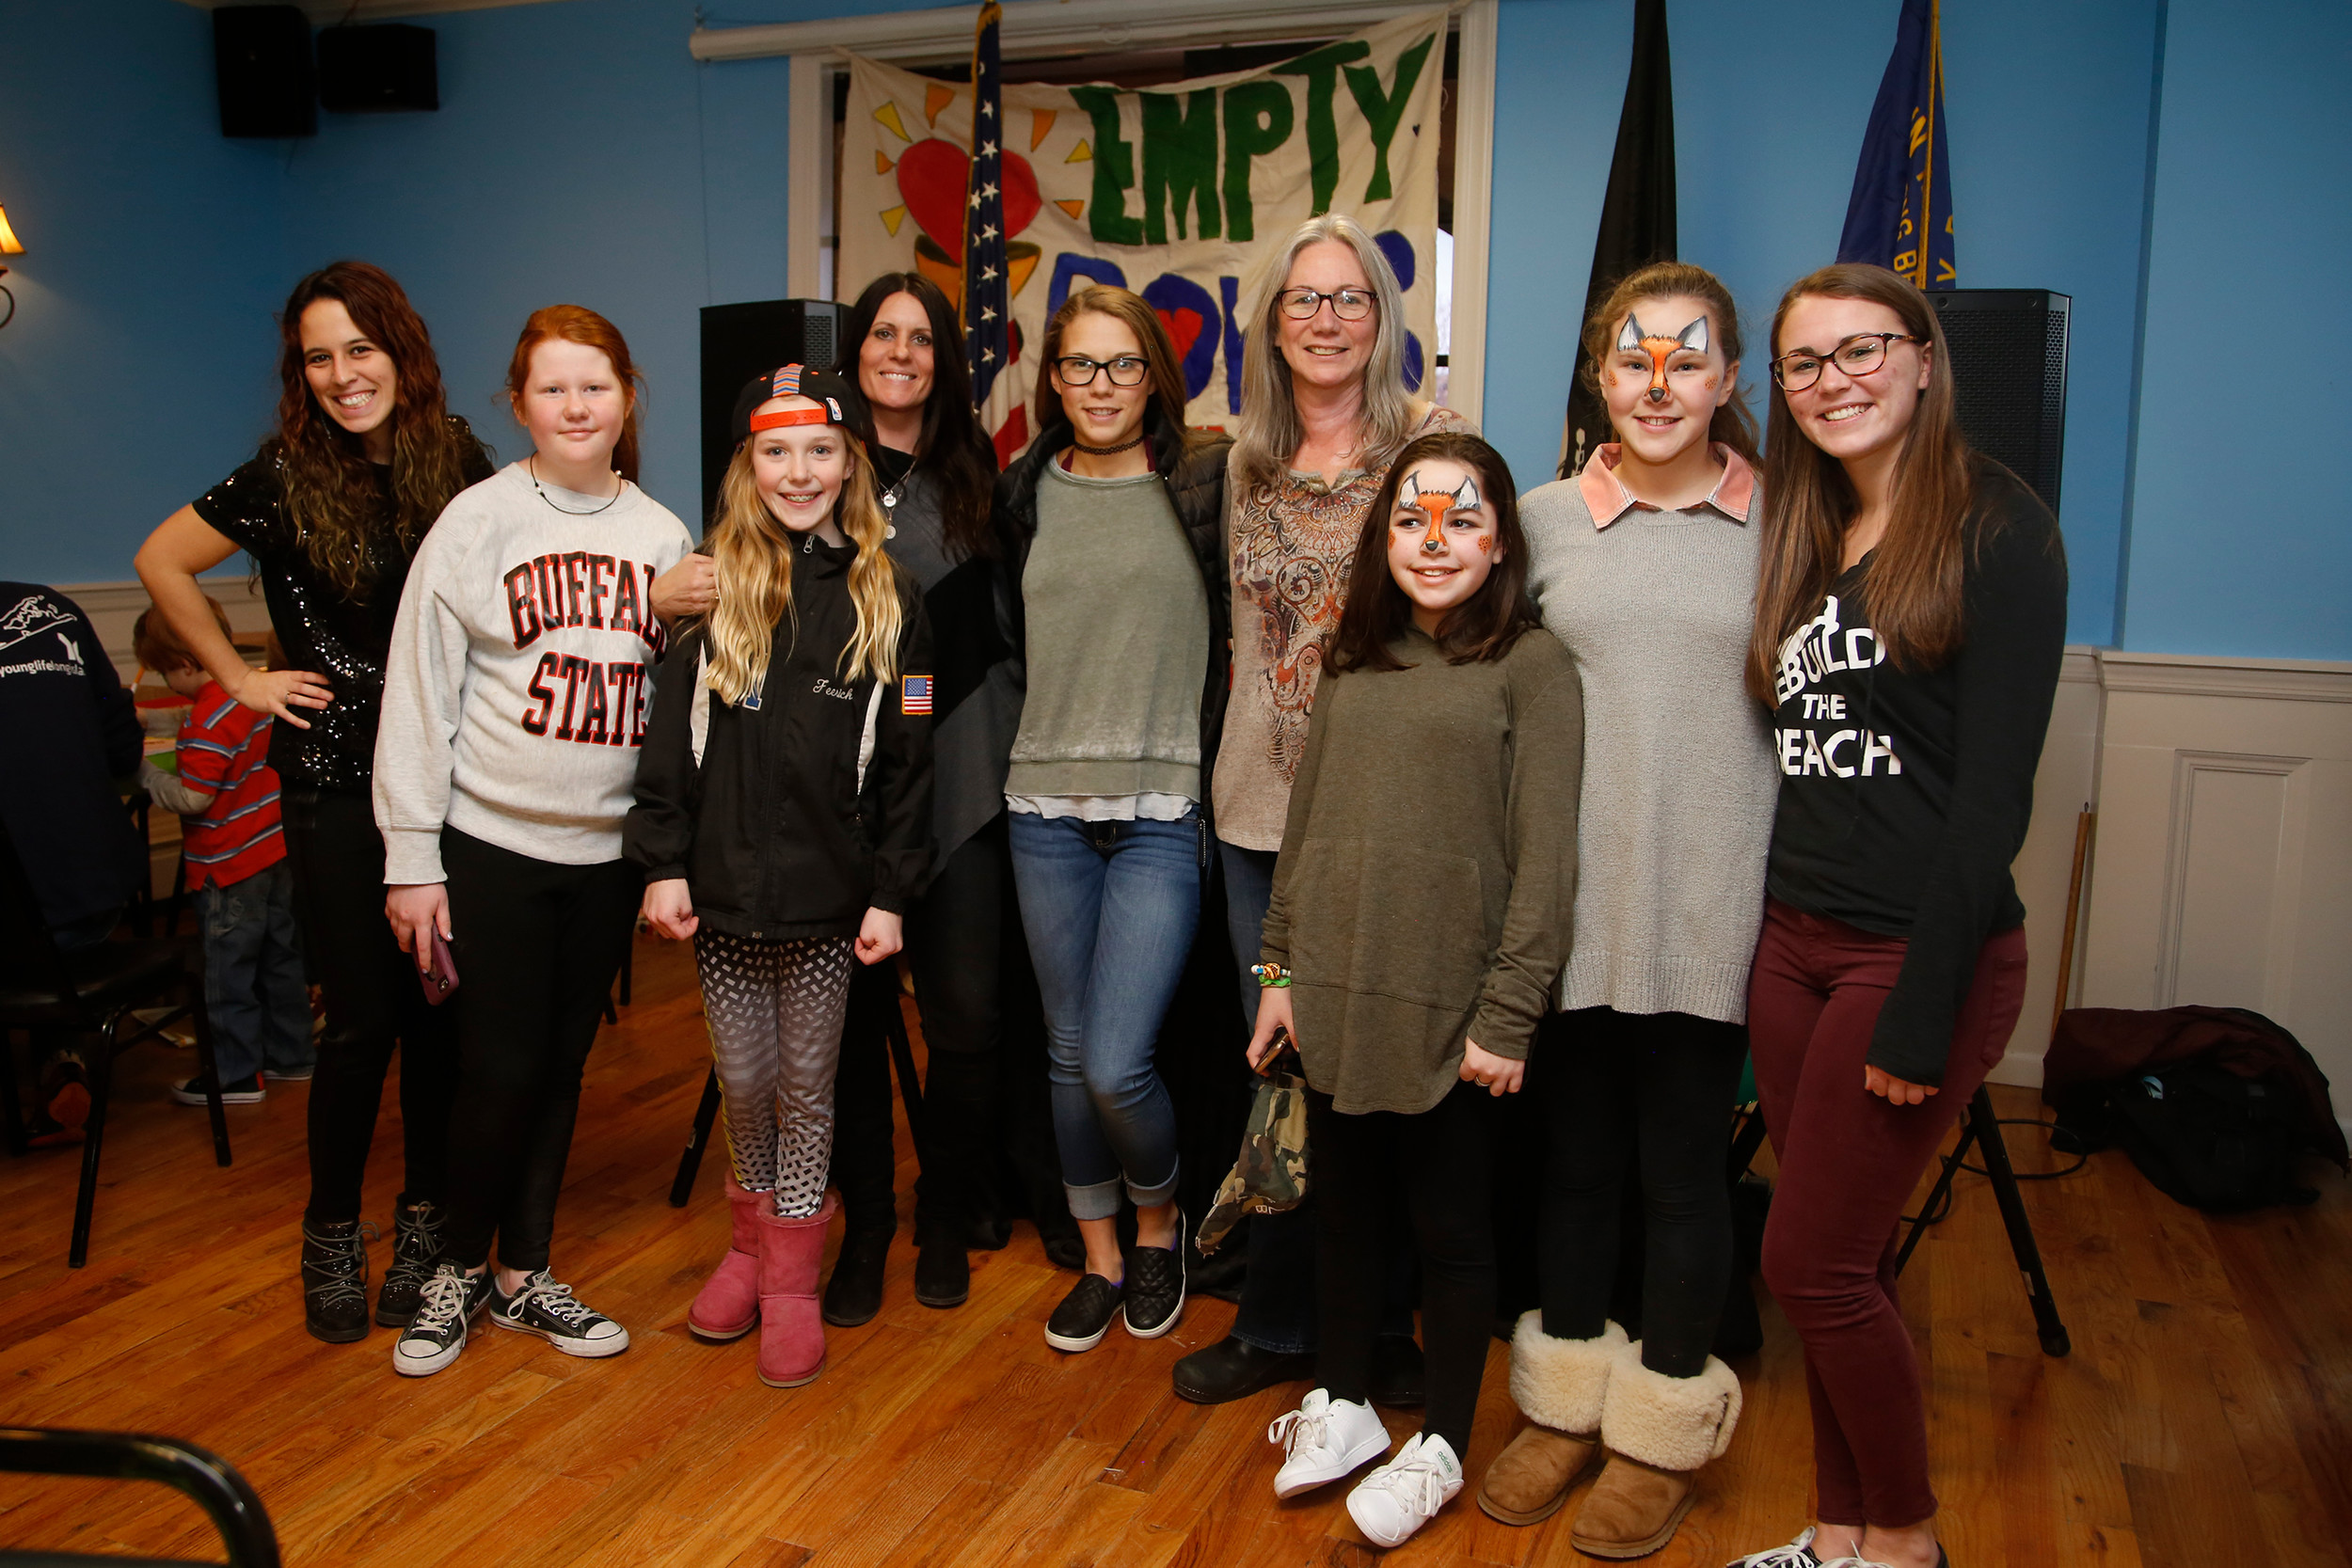 DJ Serenade, left, Keira Fitzgerald, Saoirse Ferrick, Debora Staiano, Charlotte Kyle, Earth Arts owner Michelle Kelly, Mandy Resnick, Allie Kyle and Savannah Kyle at the Empty Bowls dinner party on March 19.